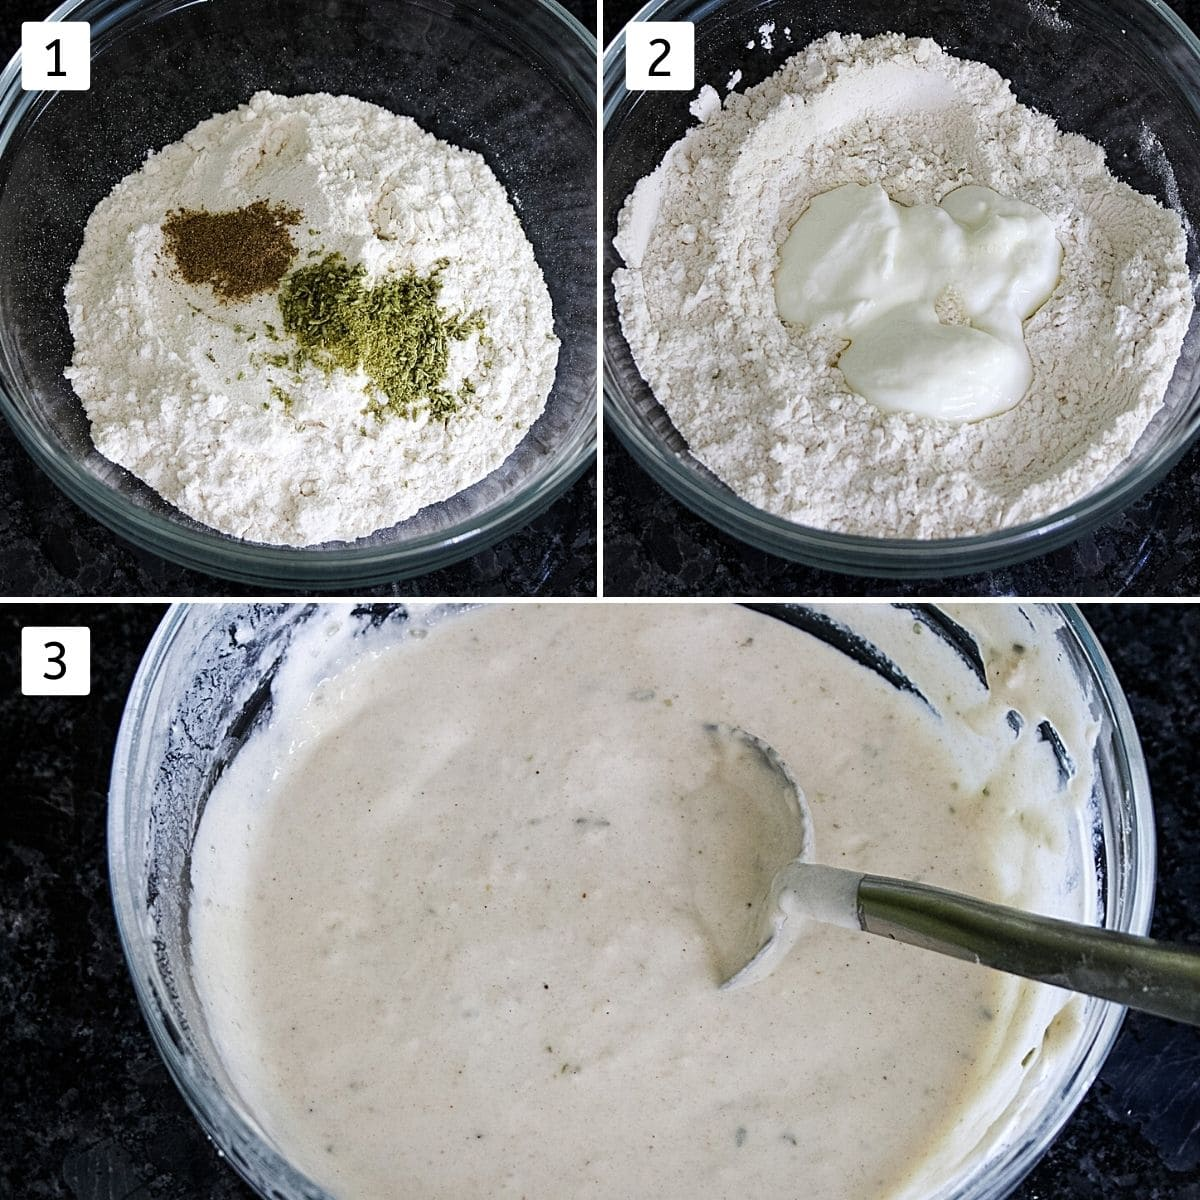 Collage of 3 images showing batter ingredients in a bowl, adding yogurt and final batter pic